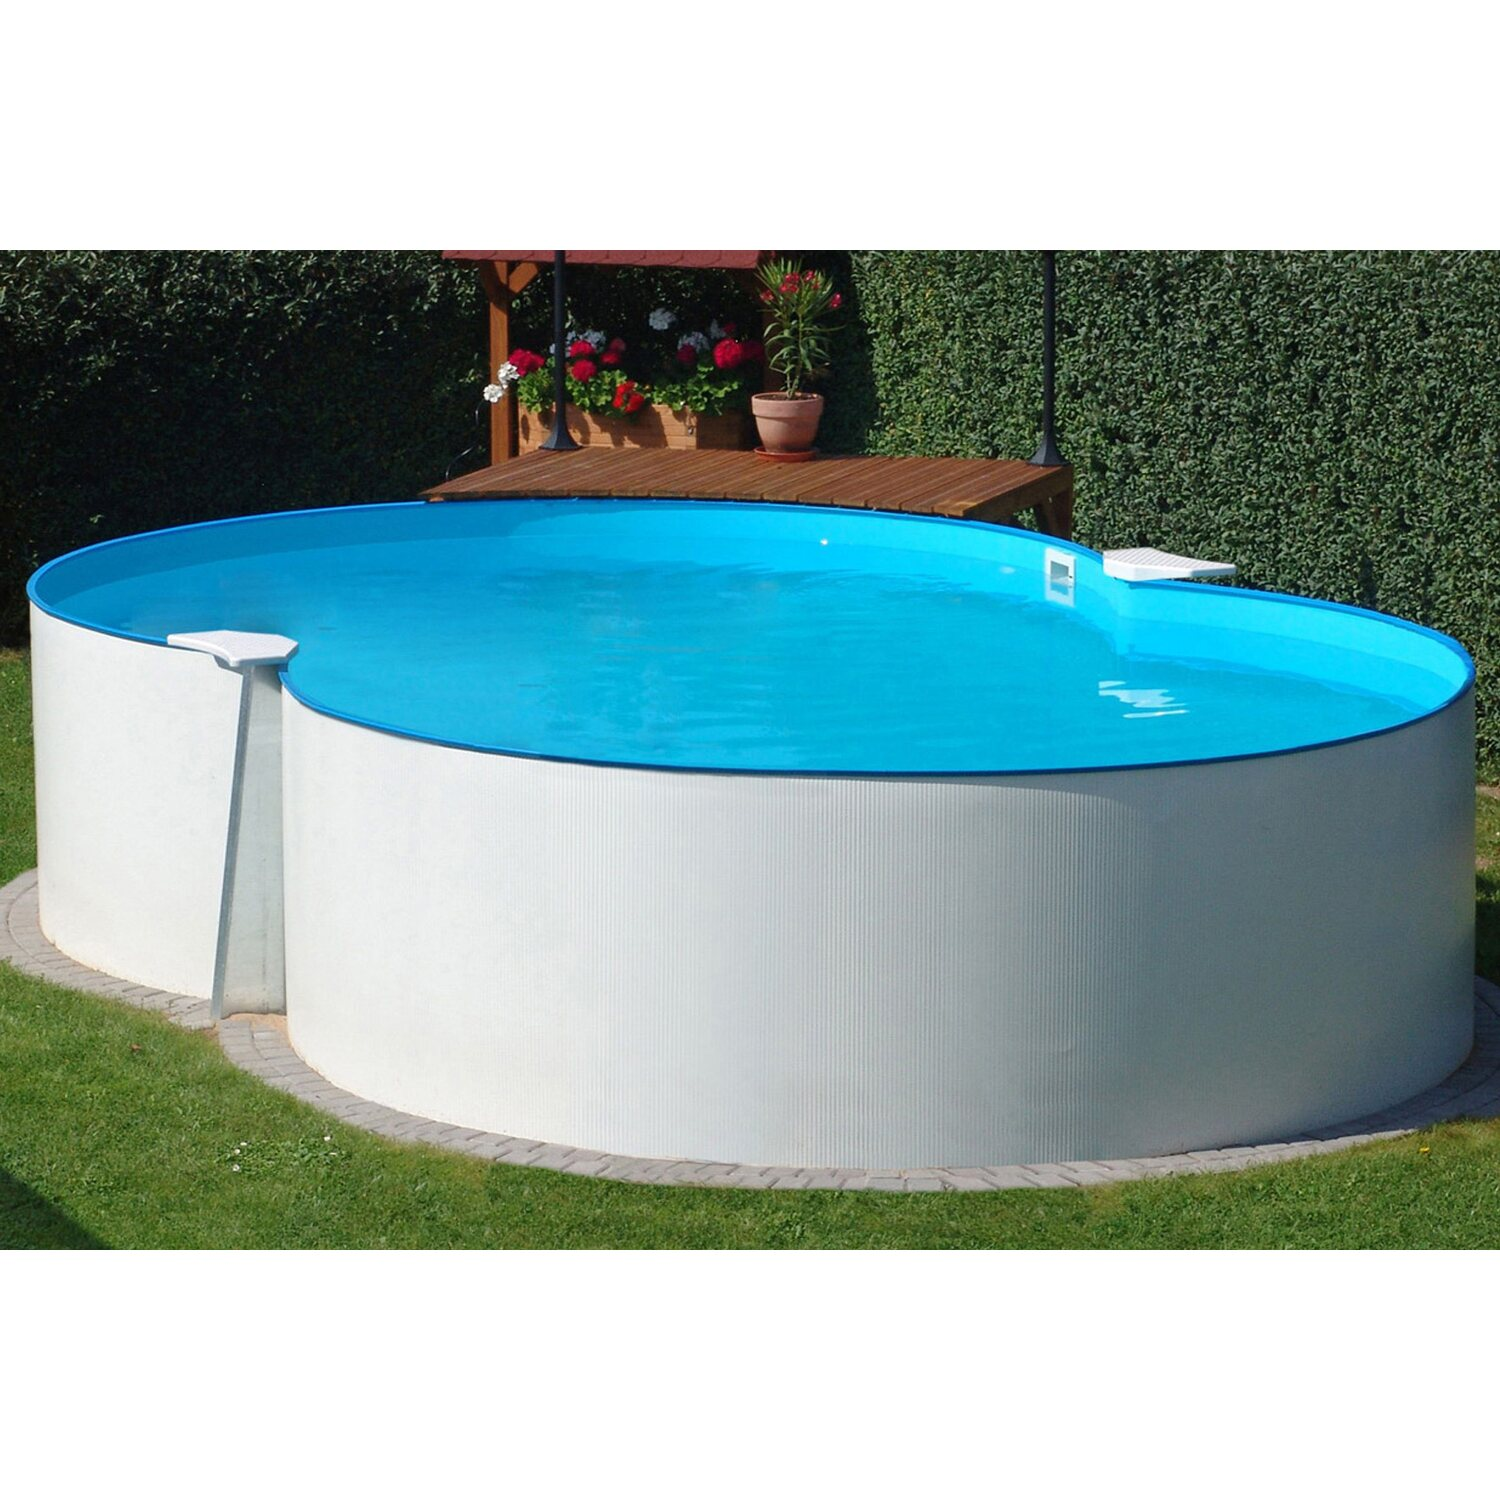 Stahlwand pool set montevideo aufstellbecken achtform 470 for Garten pool komplett